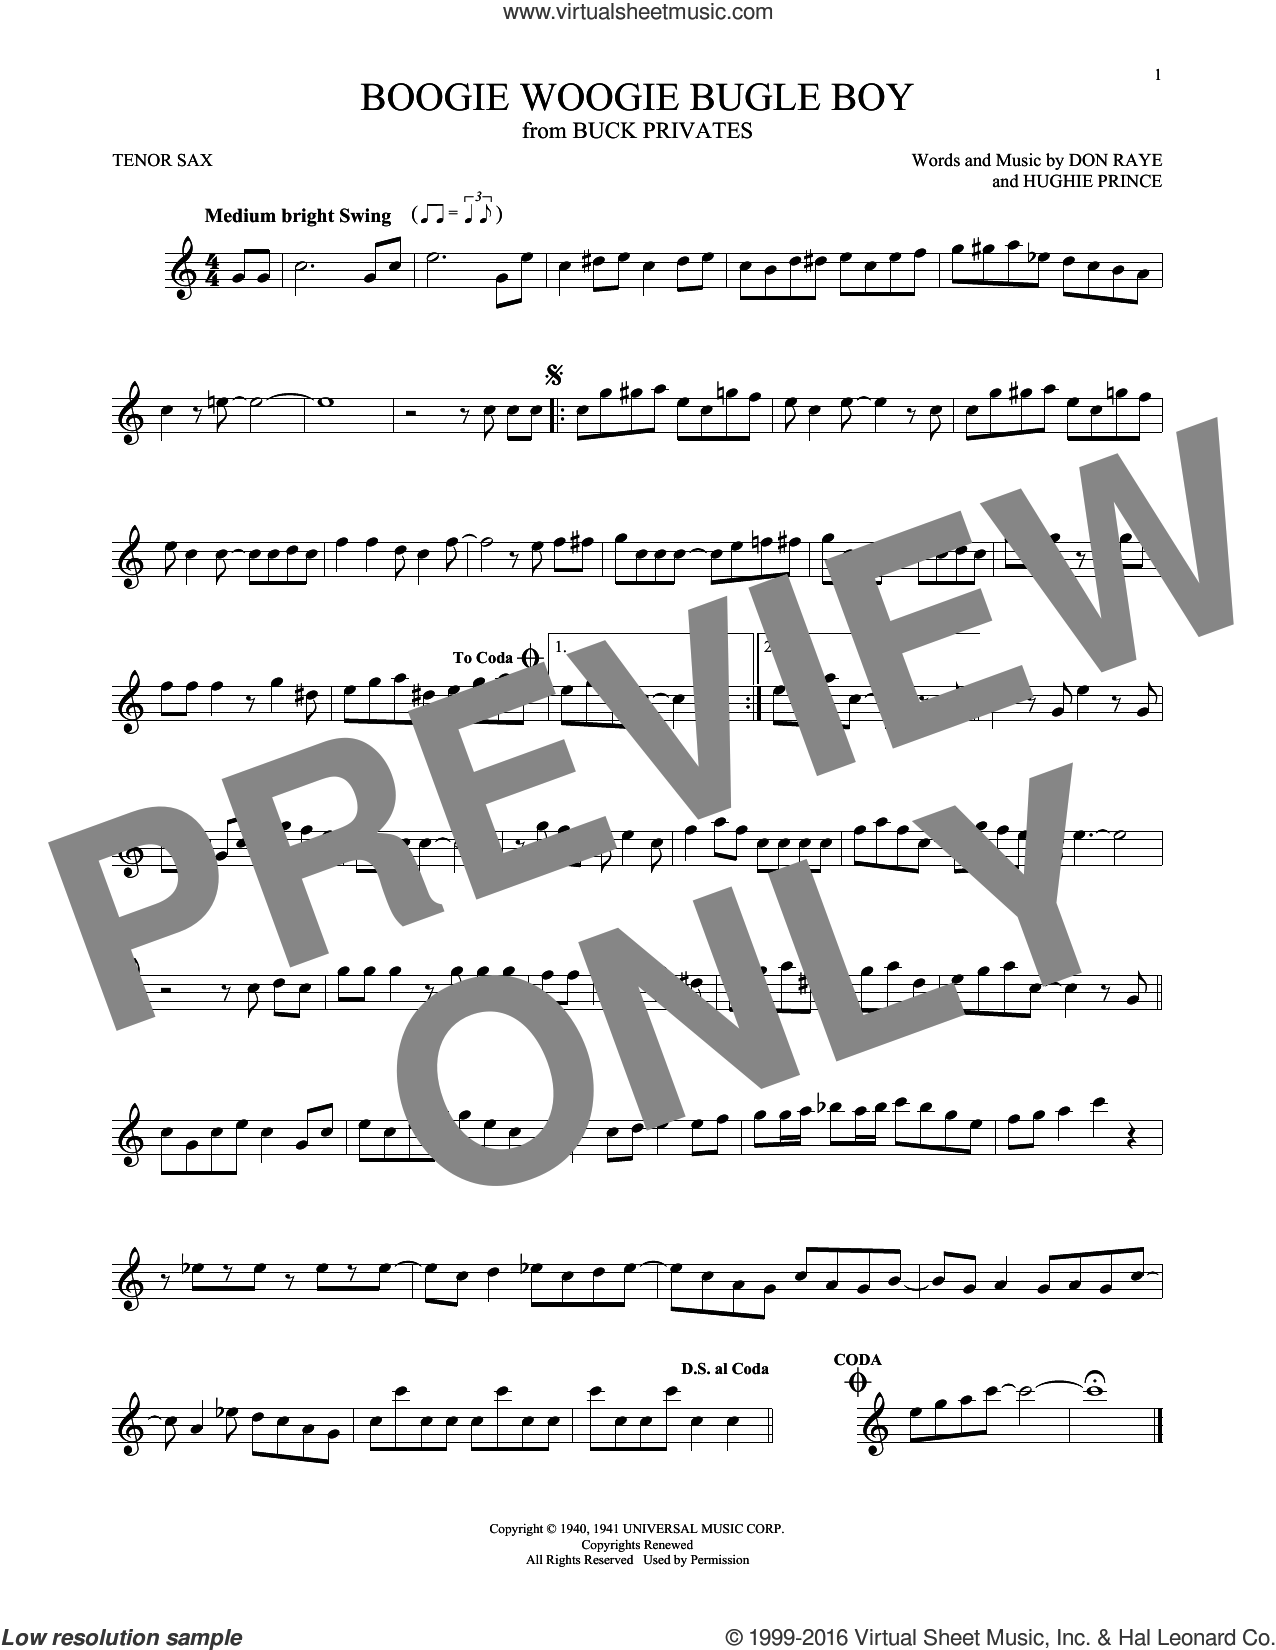 Boogie Woogie Bugle Boy sheet music for tenor saxophone solo by Hughie Prince, Bette Midler and Don Raye. Score Image Preview.